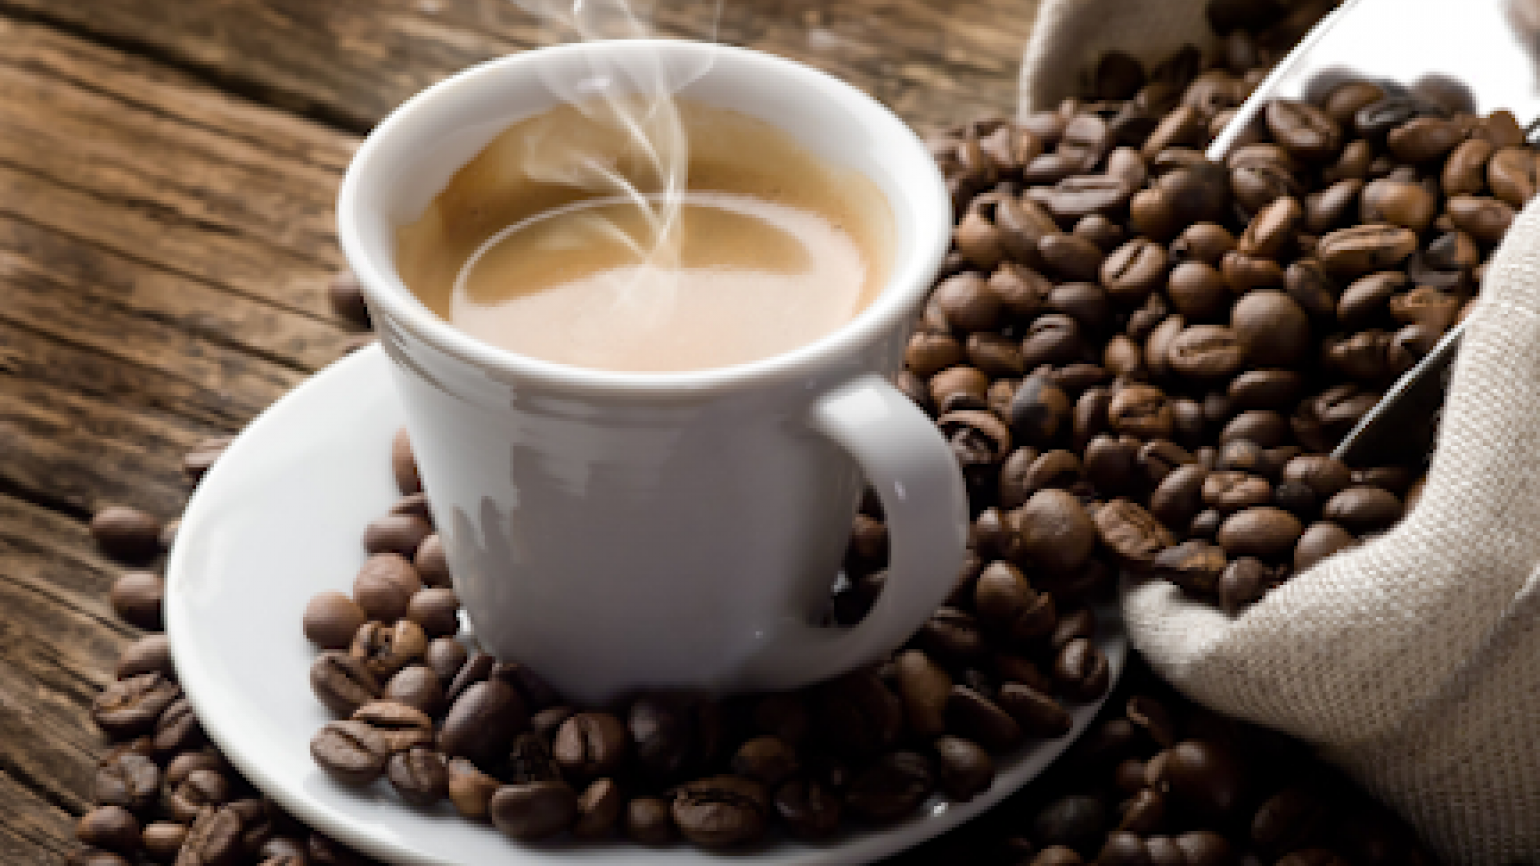 A steaming cup of coffee surrounded by coffee beans